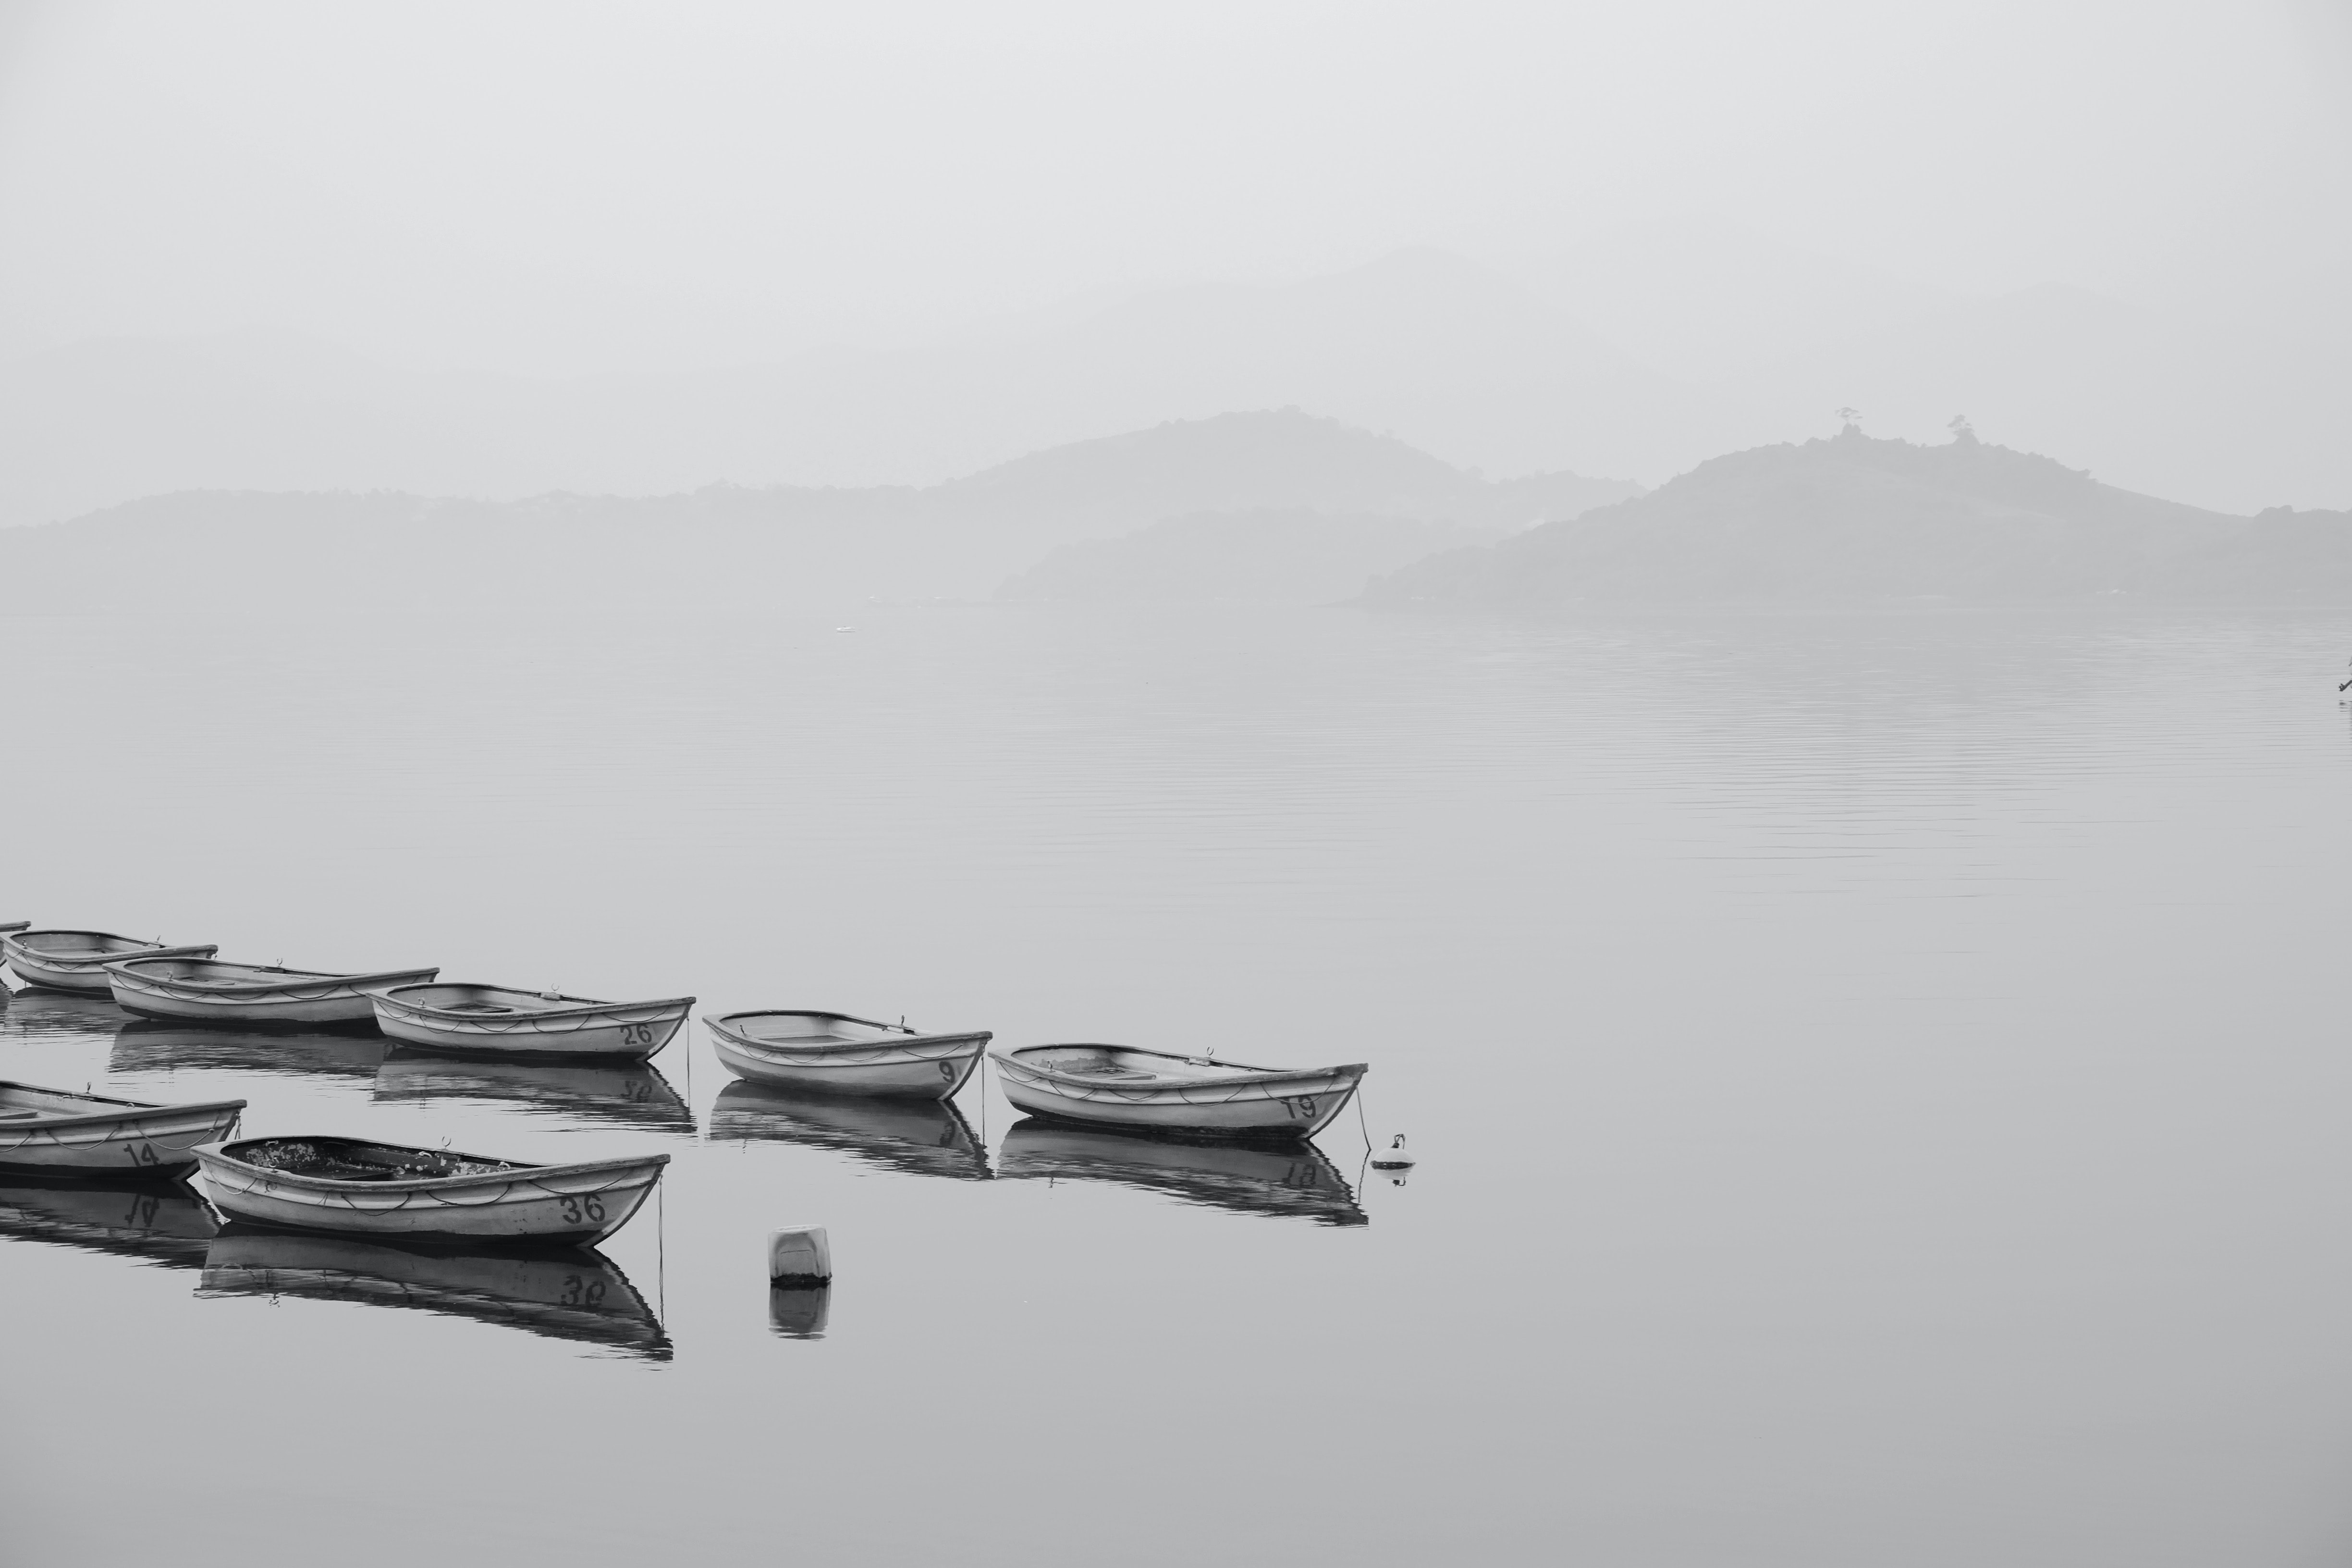 white row boats inline on body of water during foggy weather